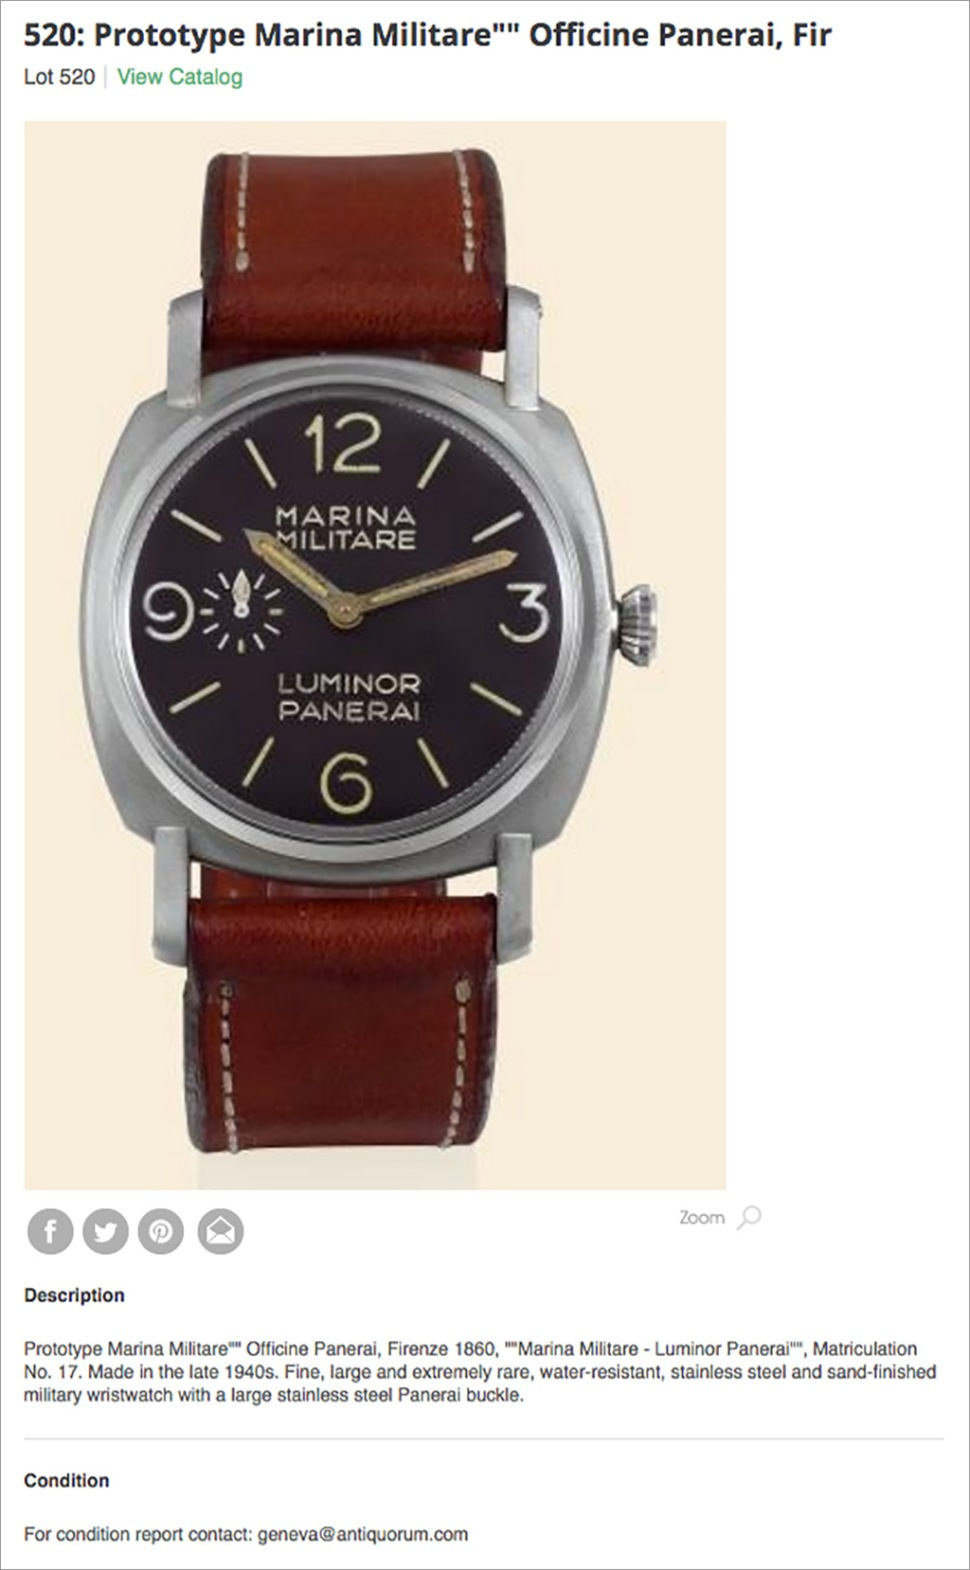 180817-panerai-3646-transitional-matr-no-17-listing-antiquorum-2007